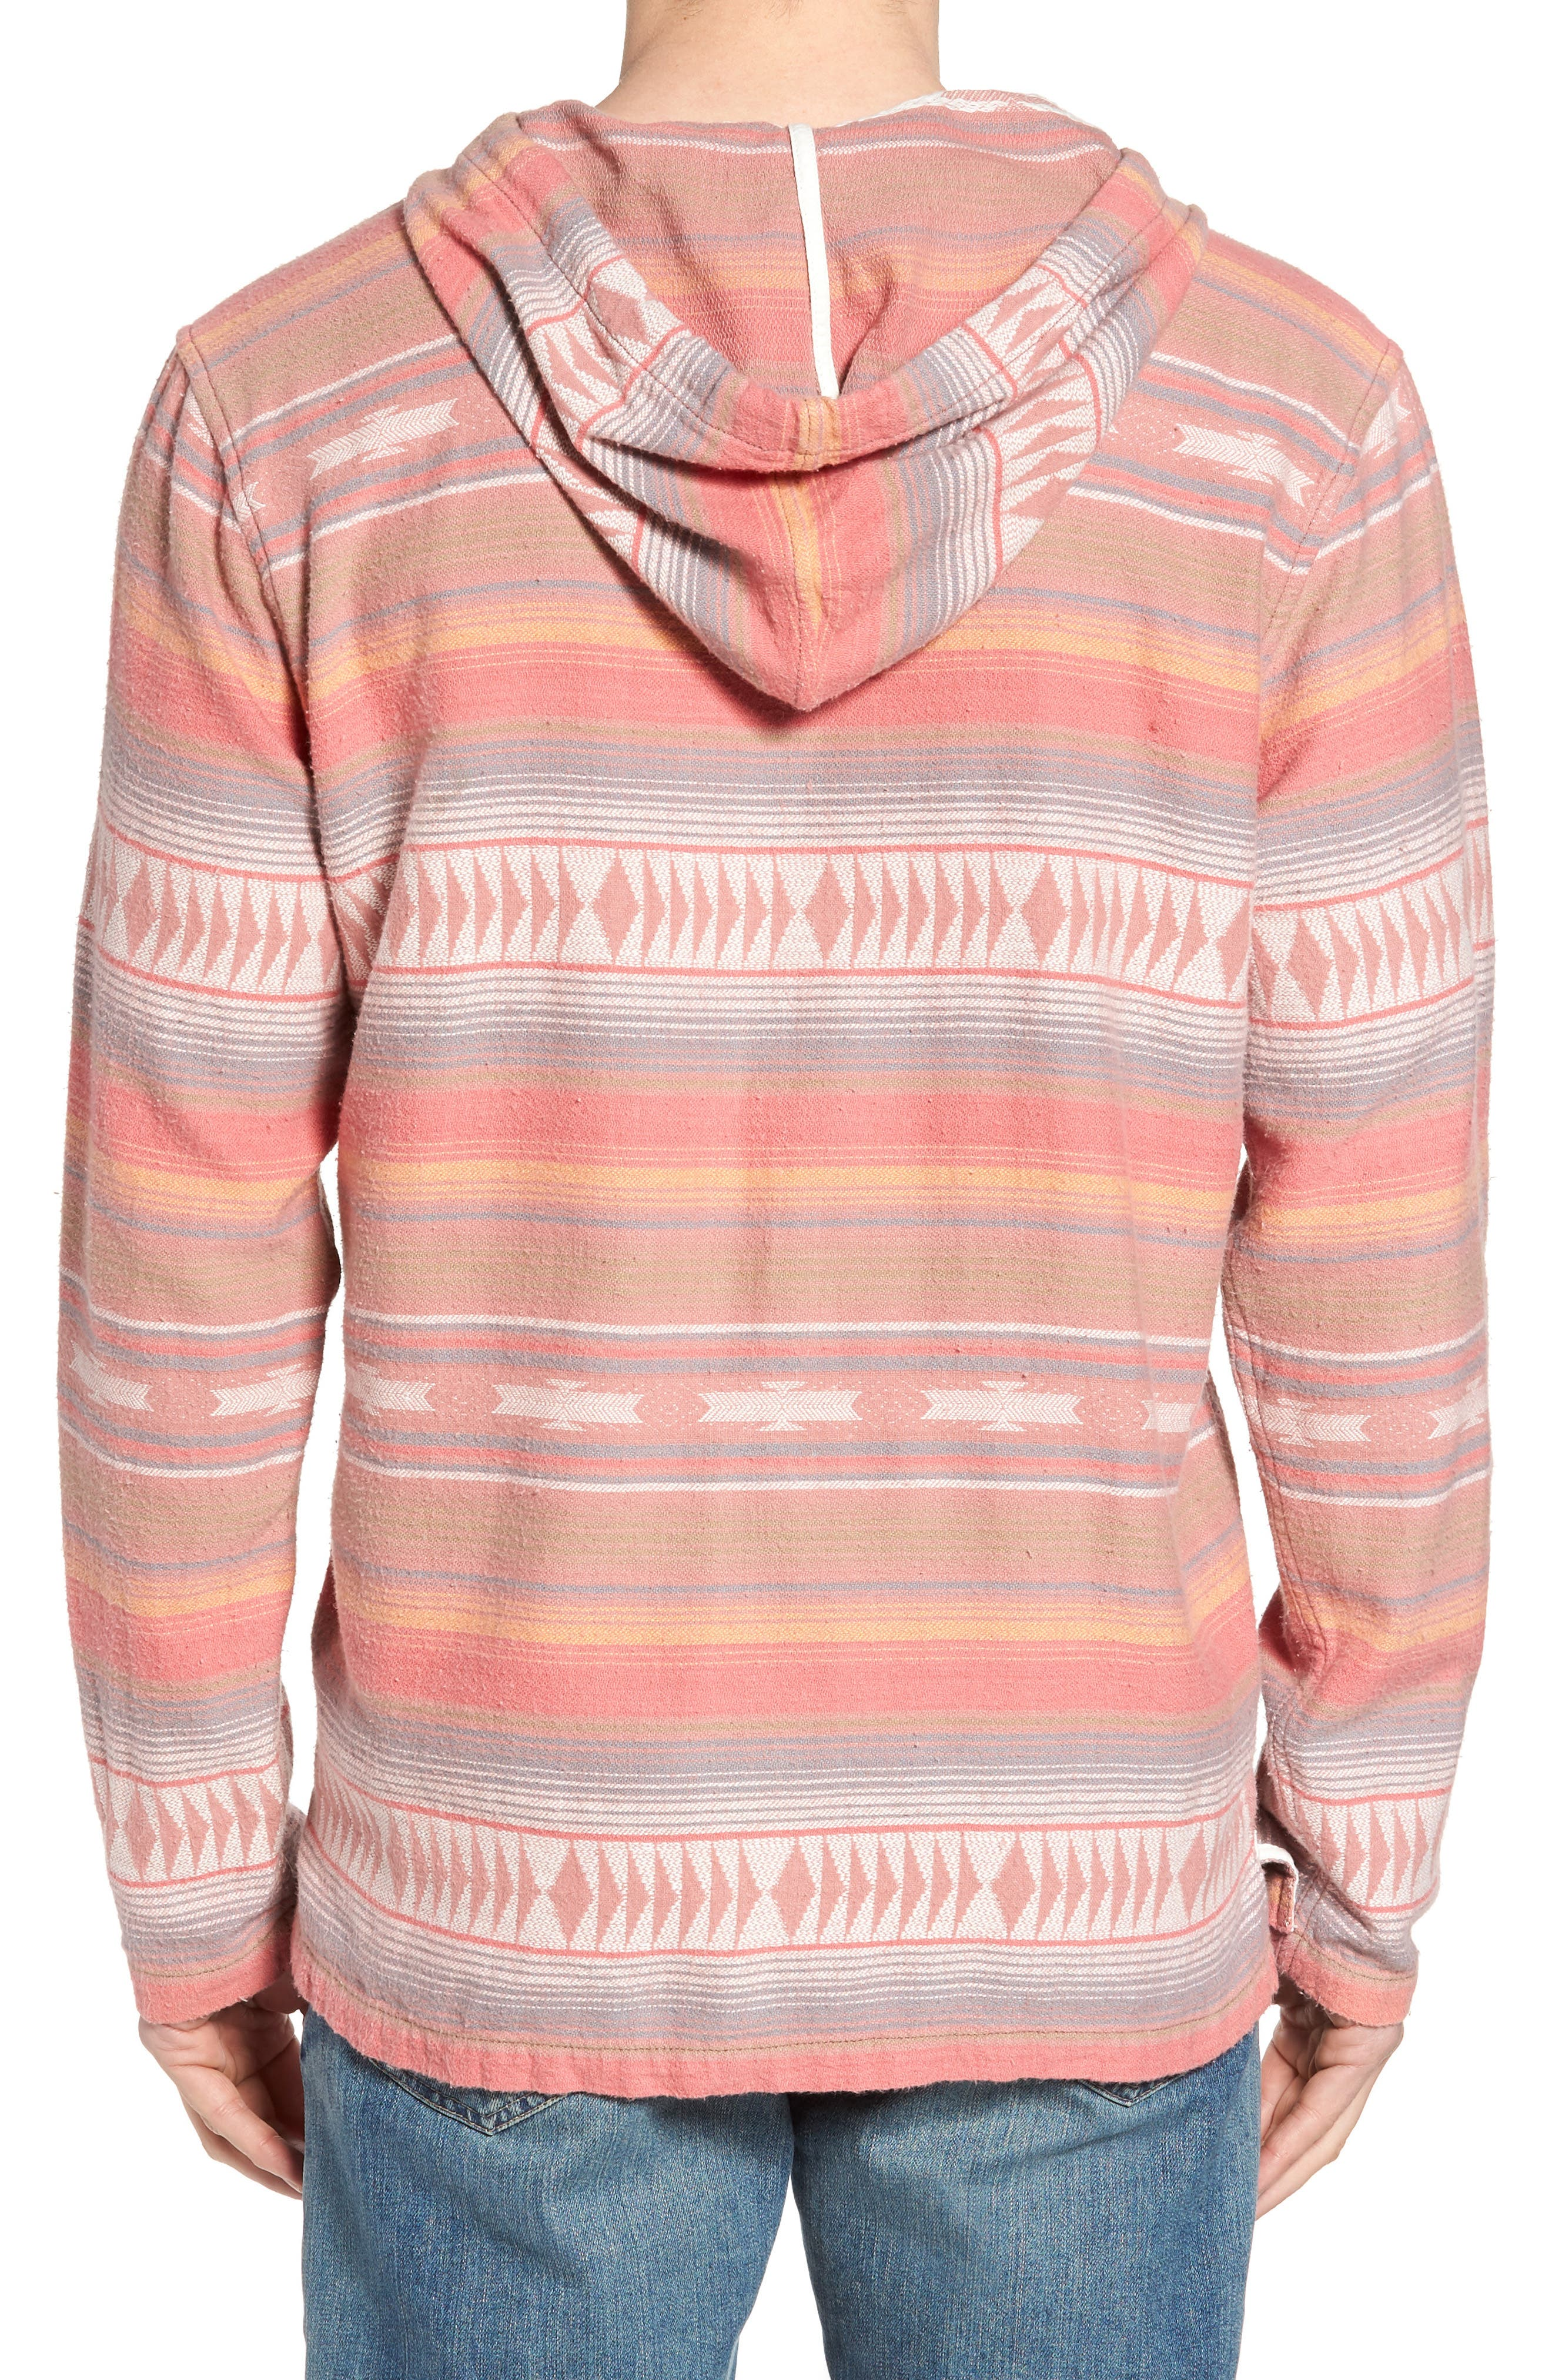 Baja Poncho Hoodie,                             Alternate thumbnail 2, color,                             Faded Red